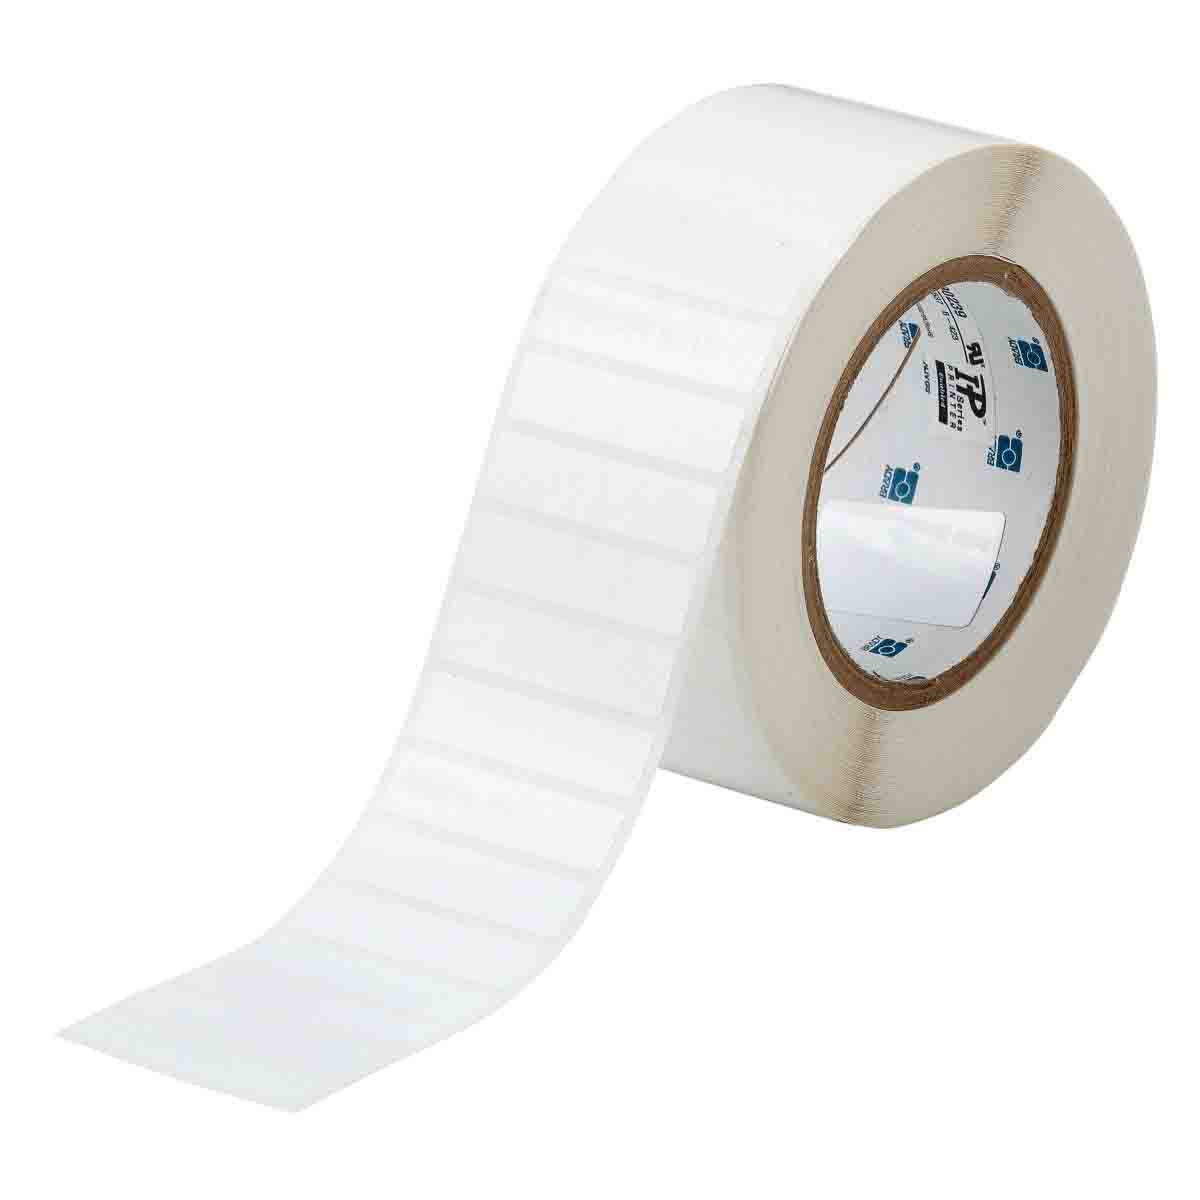 B-423 Permanent Polyester Gloss Finish White Thermal Transfer Printable Label 3000 per Roll Brady THT-18-423-3 3 Width x 1 Height